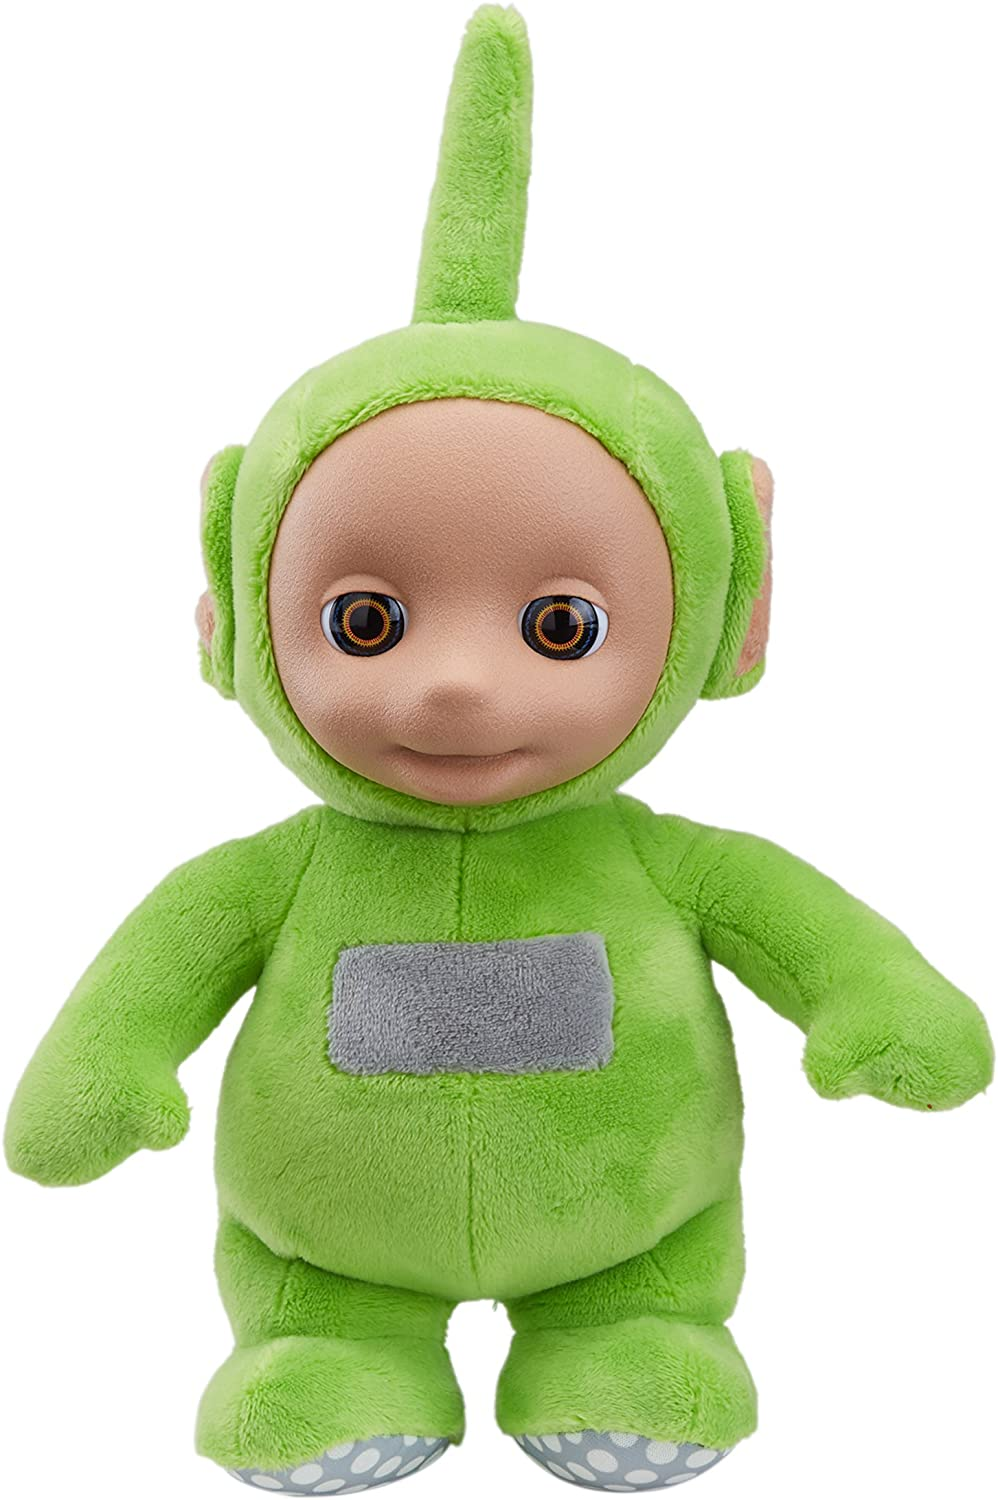 **TELETUBBIES 1996 CLASSIC  DIPSY CHANGING PICTURE TUMMY SOFT TOY** TINKY PO LAA